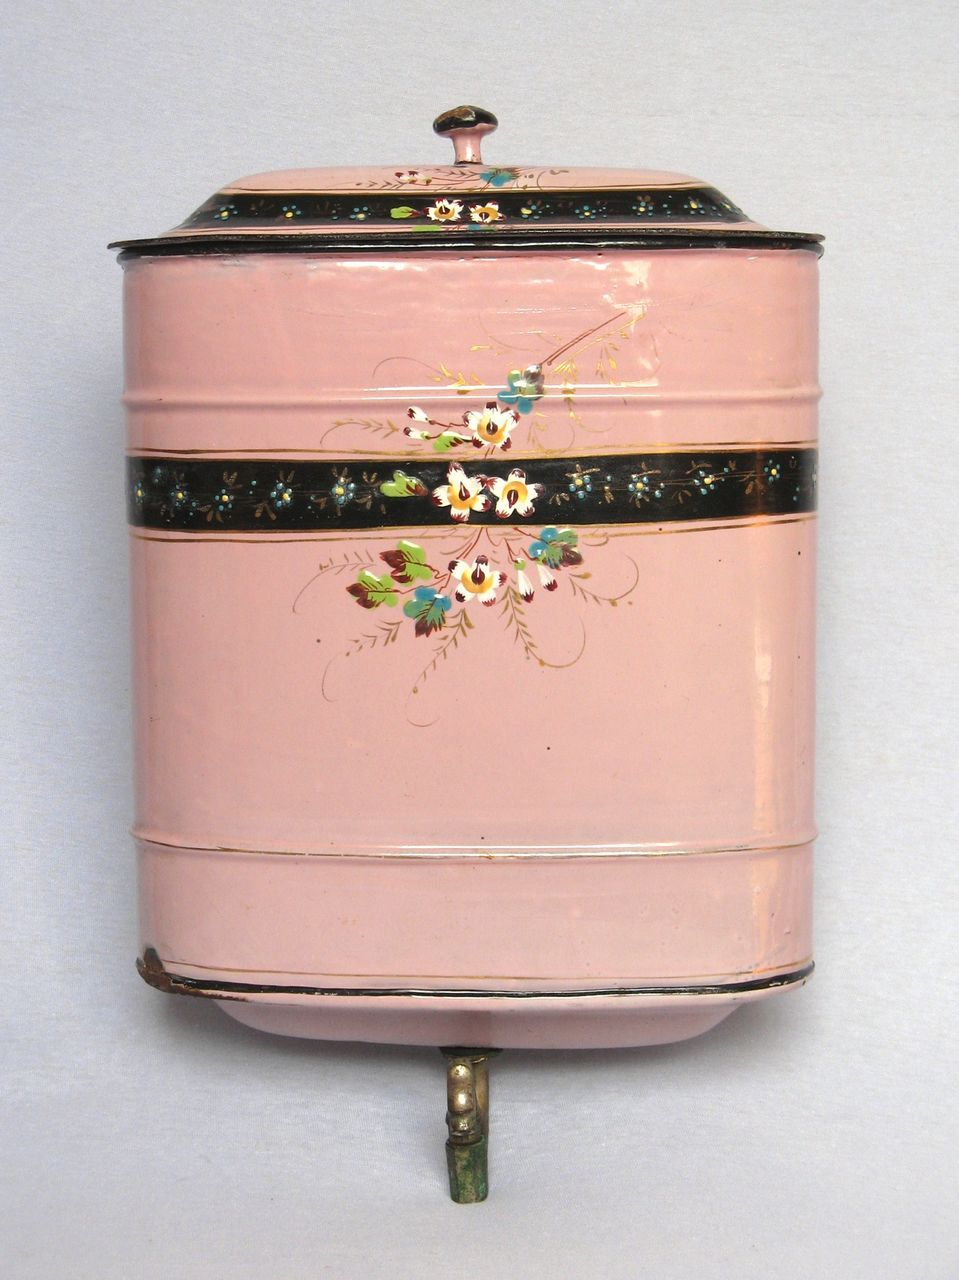 Pink French Enamelware Lavabo Fountain - Floral decor - Late 1800s from yesterdaysfrance on Ruby Lane